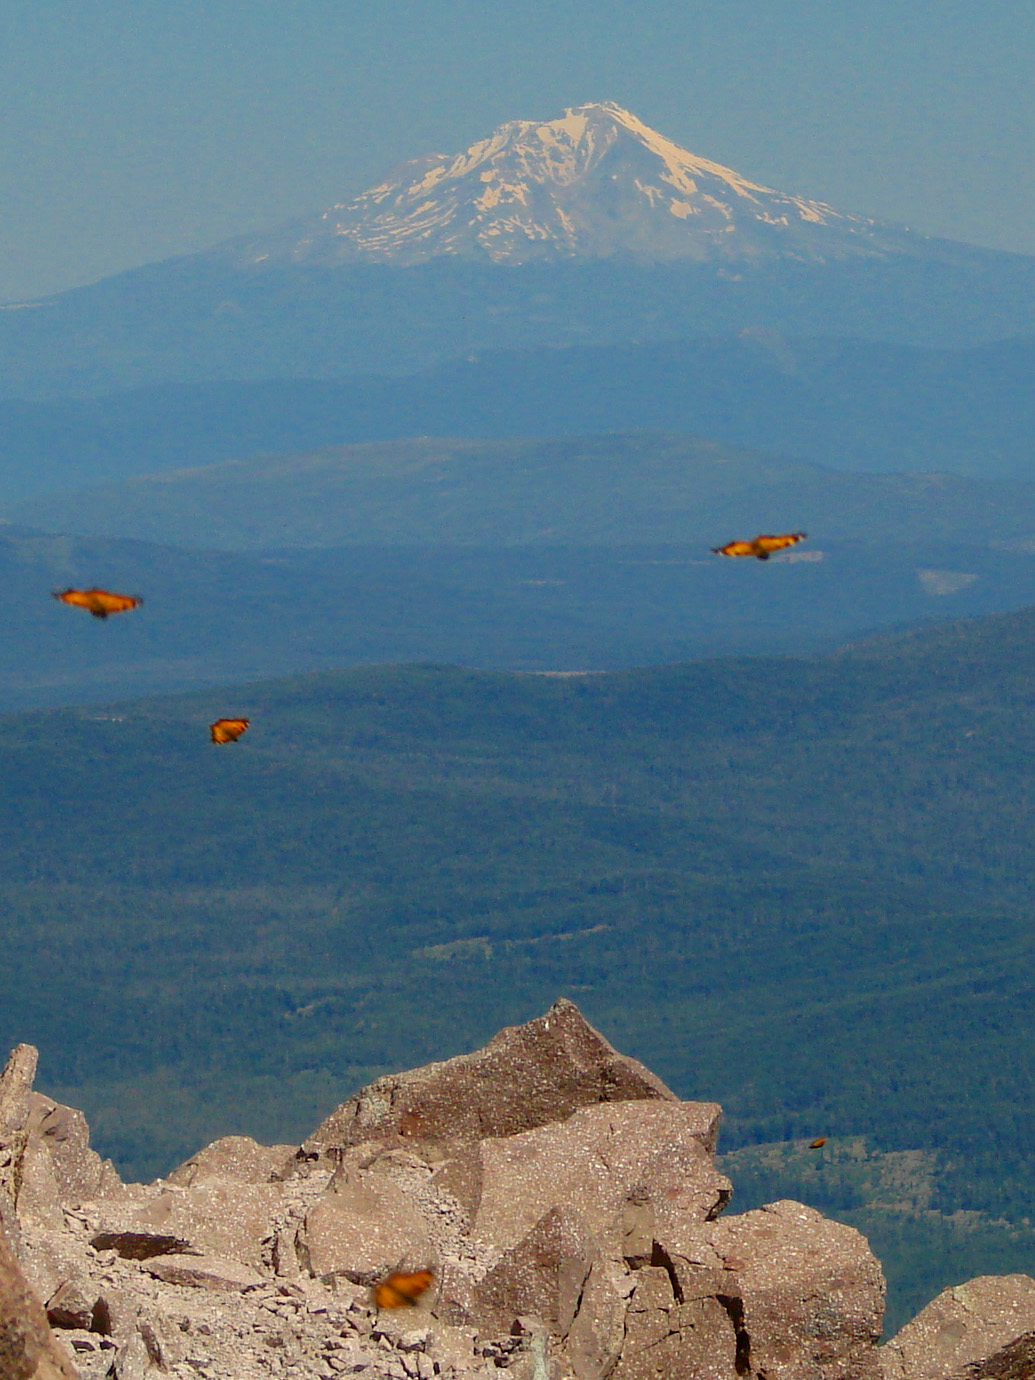 Mount shasta with butterflies